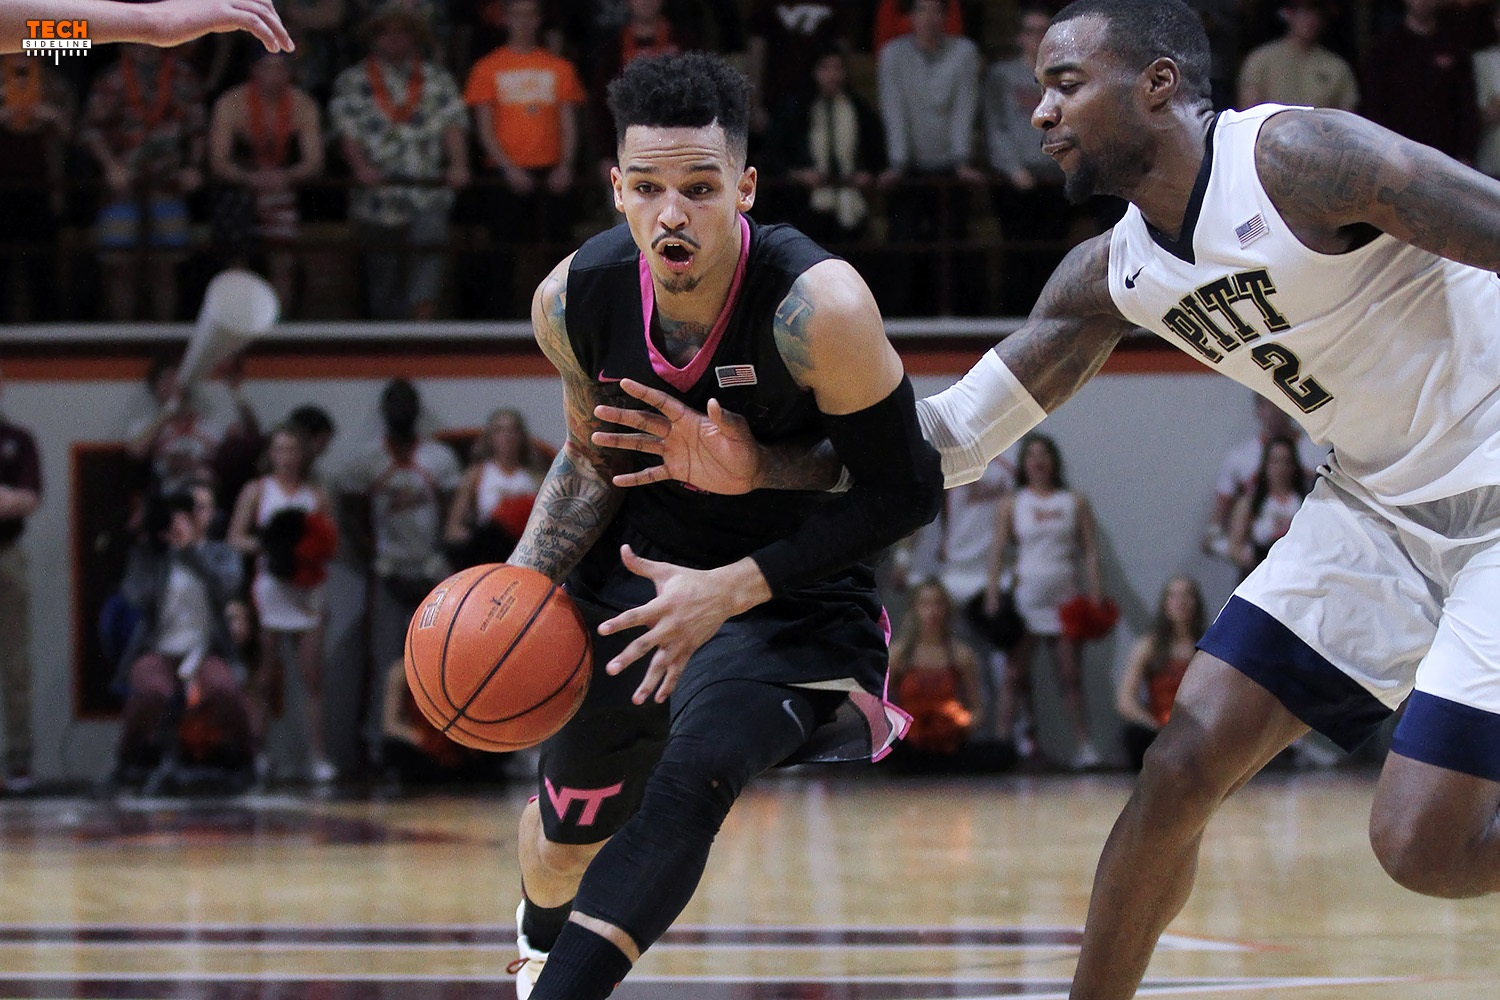 Seth Allen and the Hokies beat Pitt to record their fourth consecutive win.